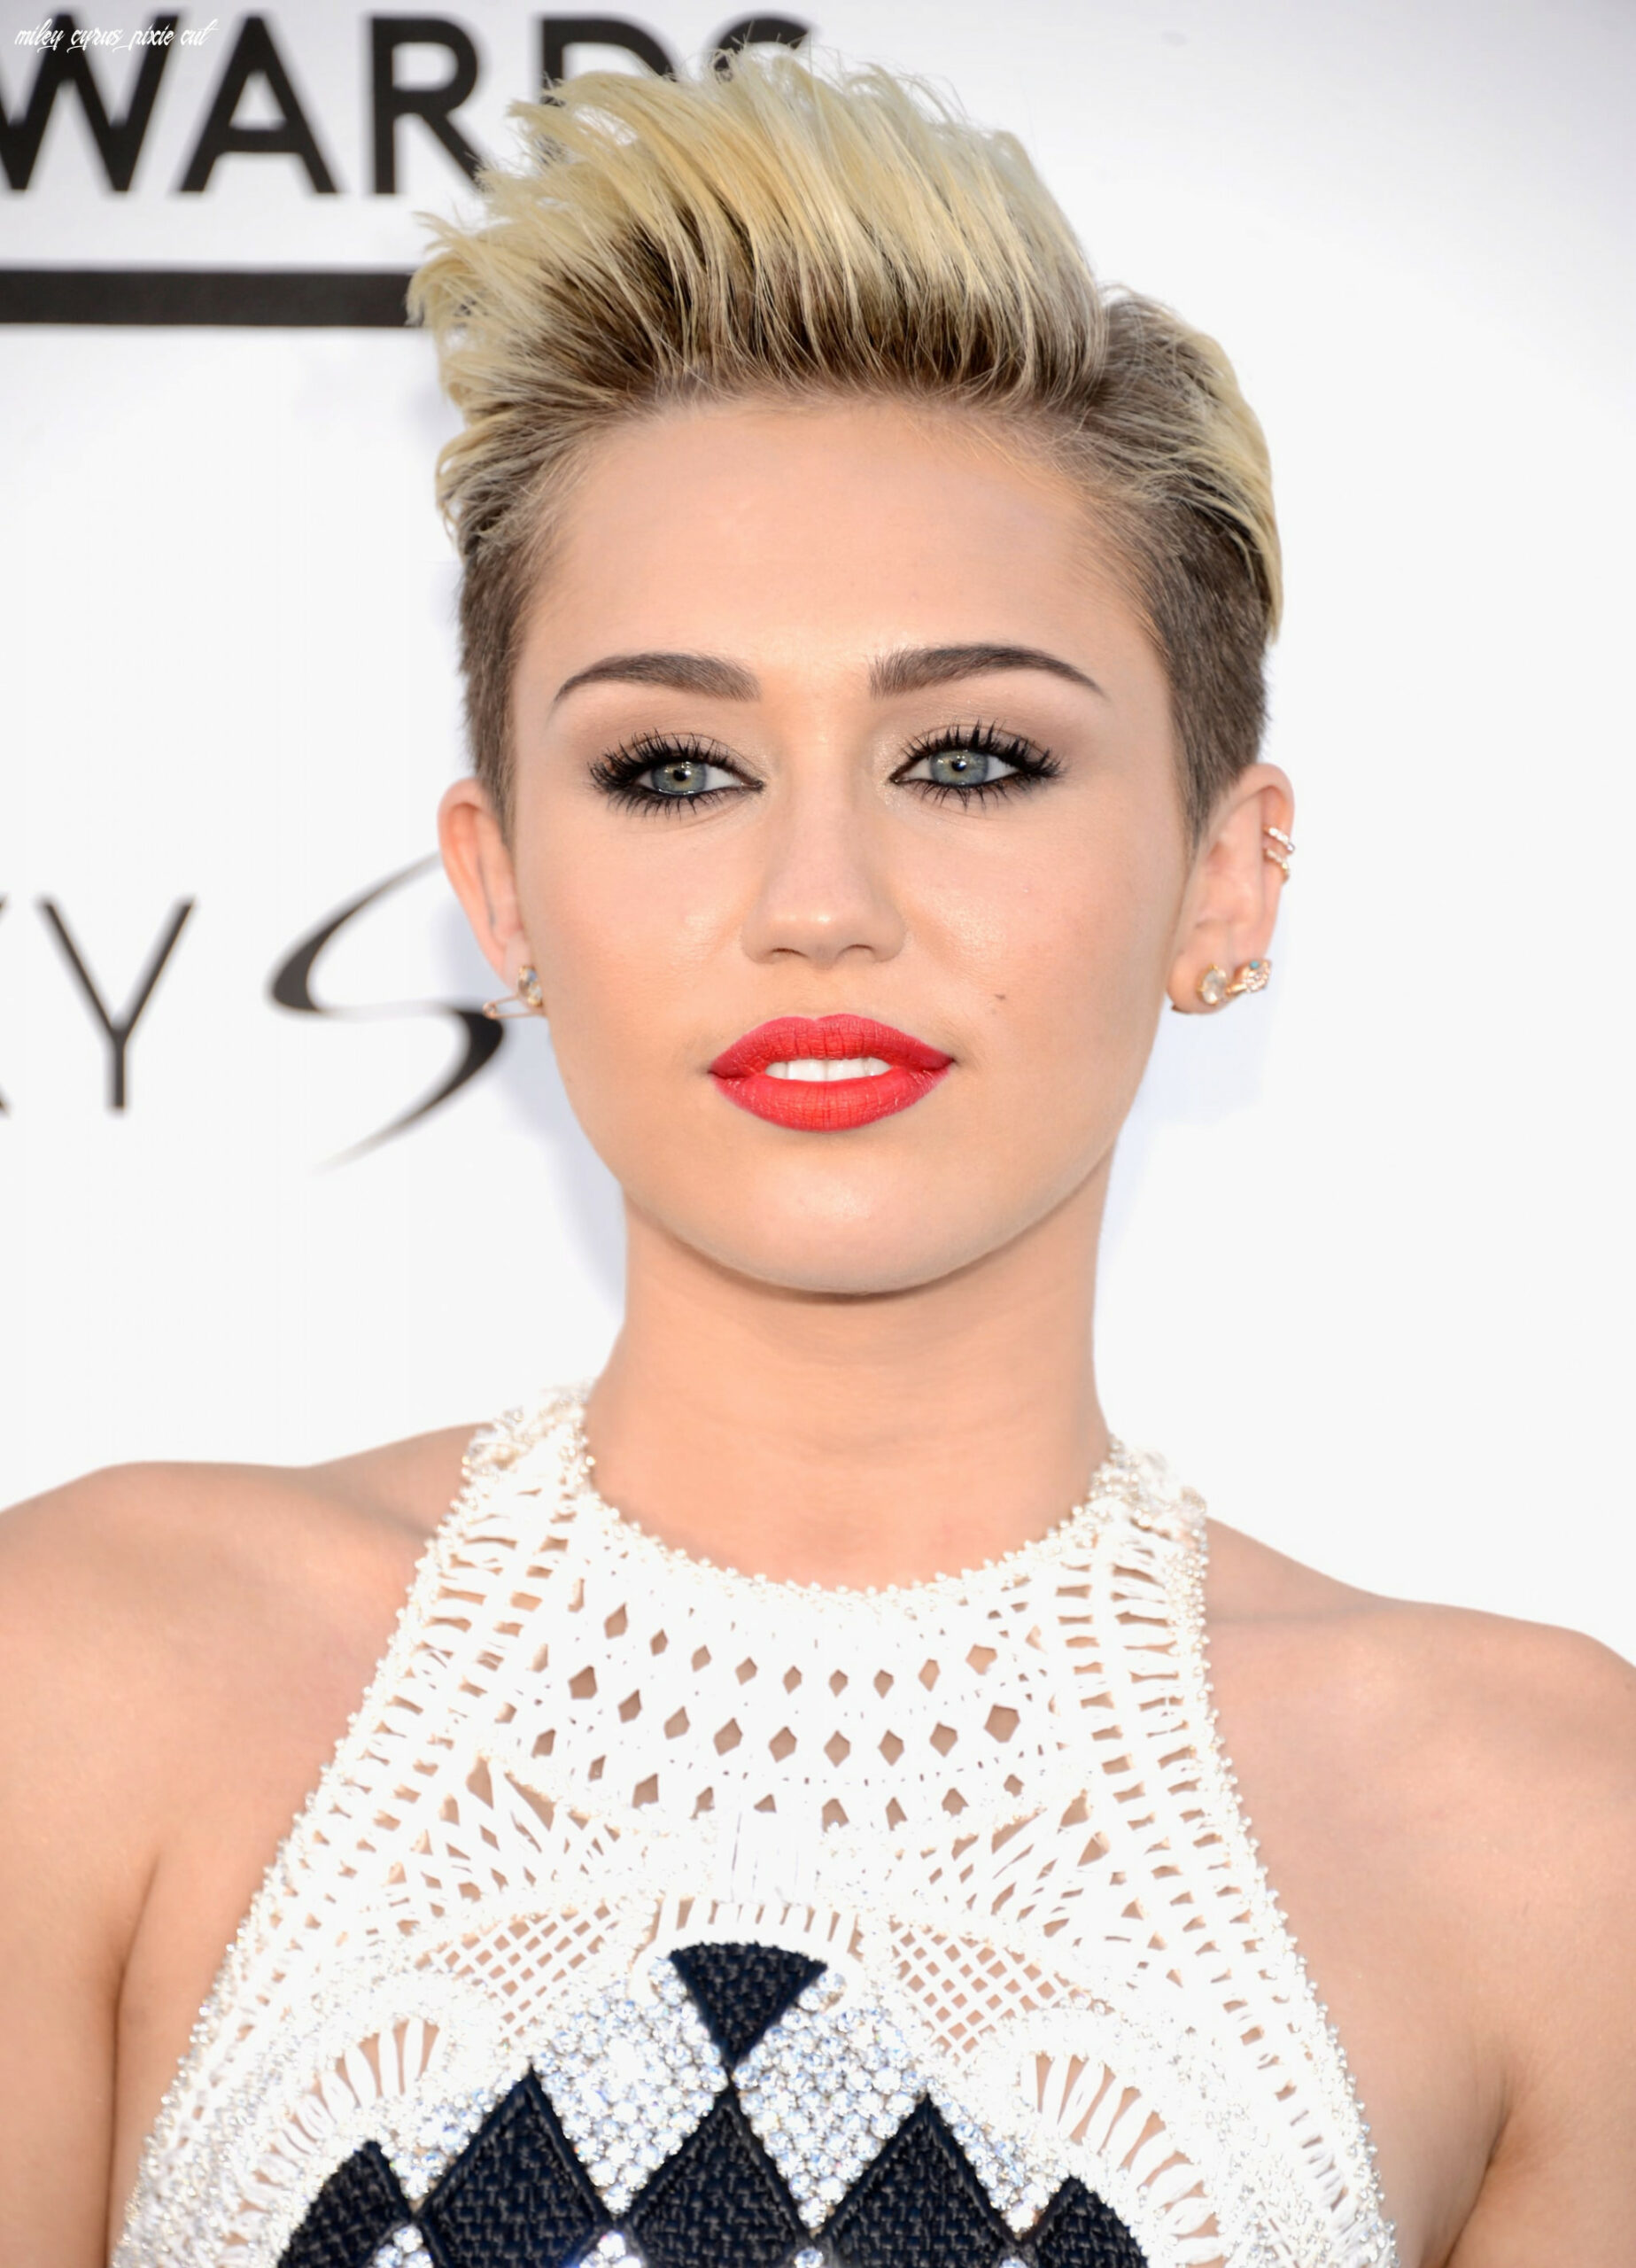 Miley cyrus with a pixie cut | 12 celebrity pixie haircuts that